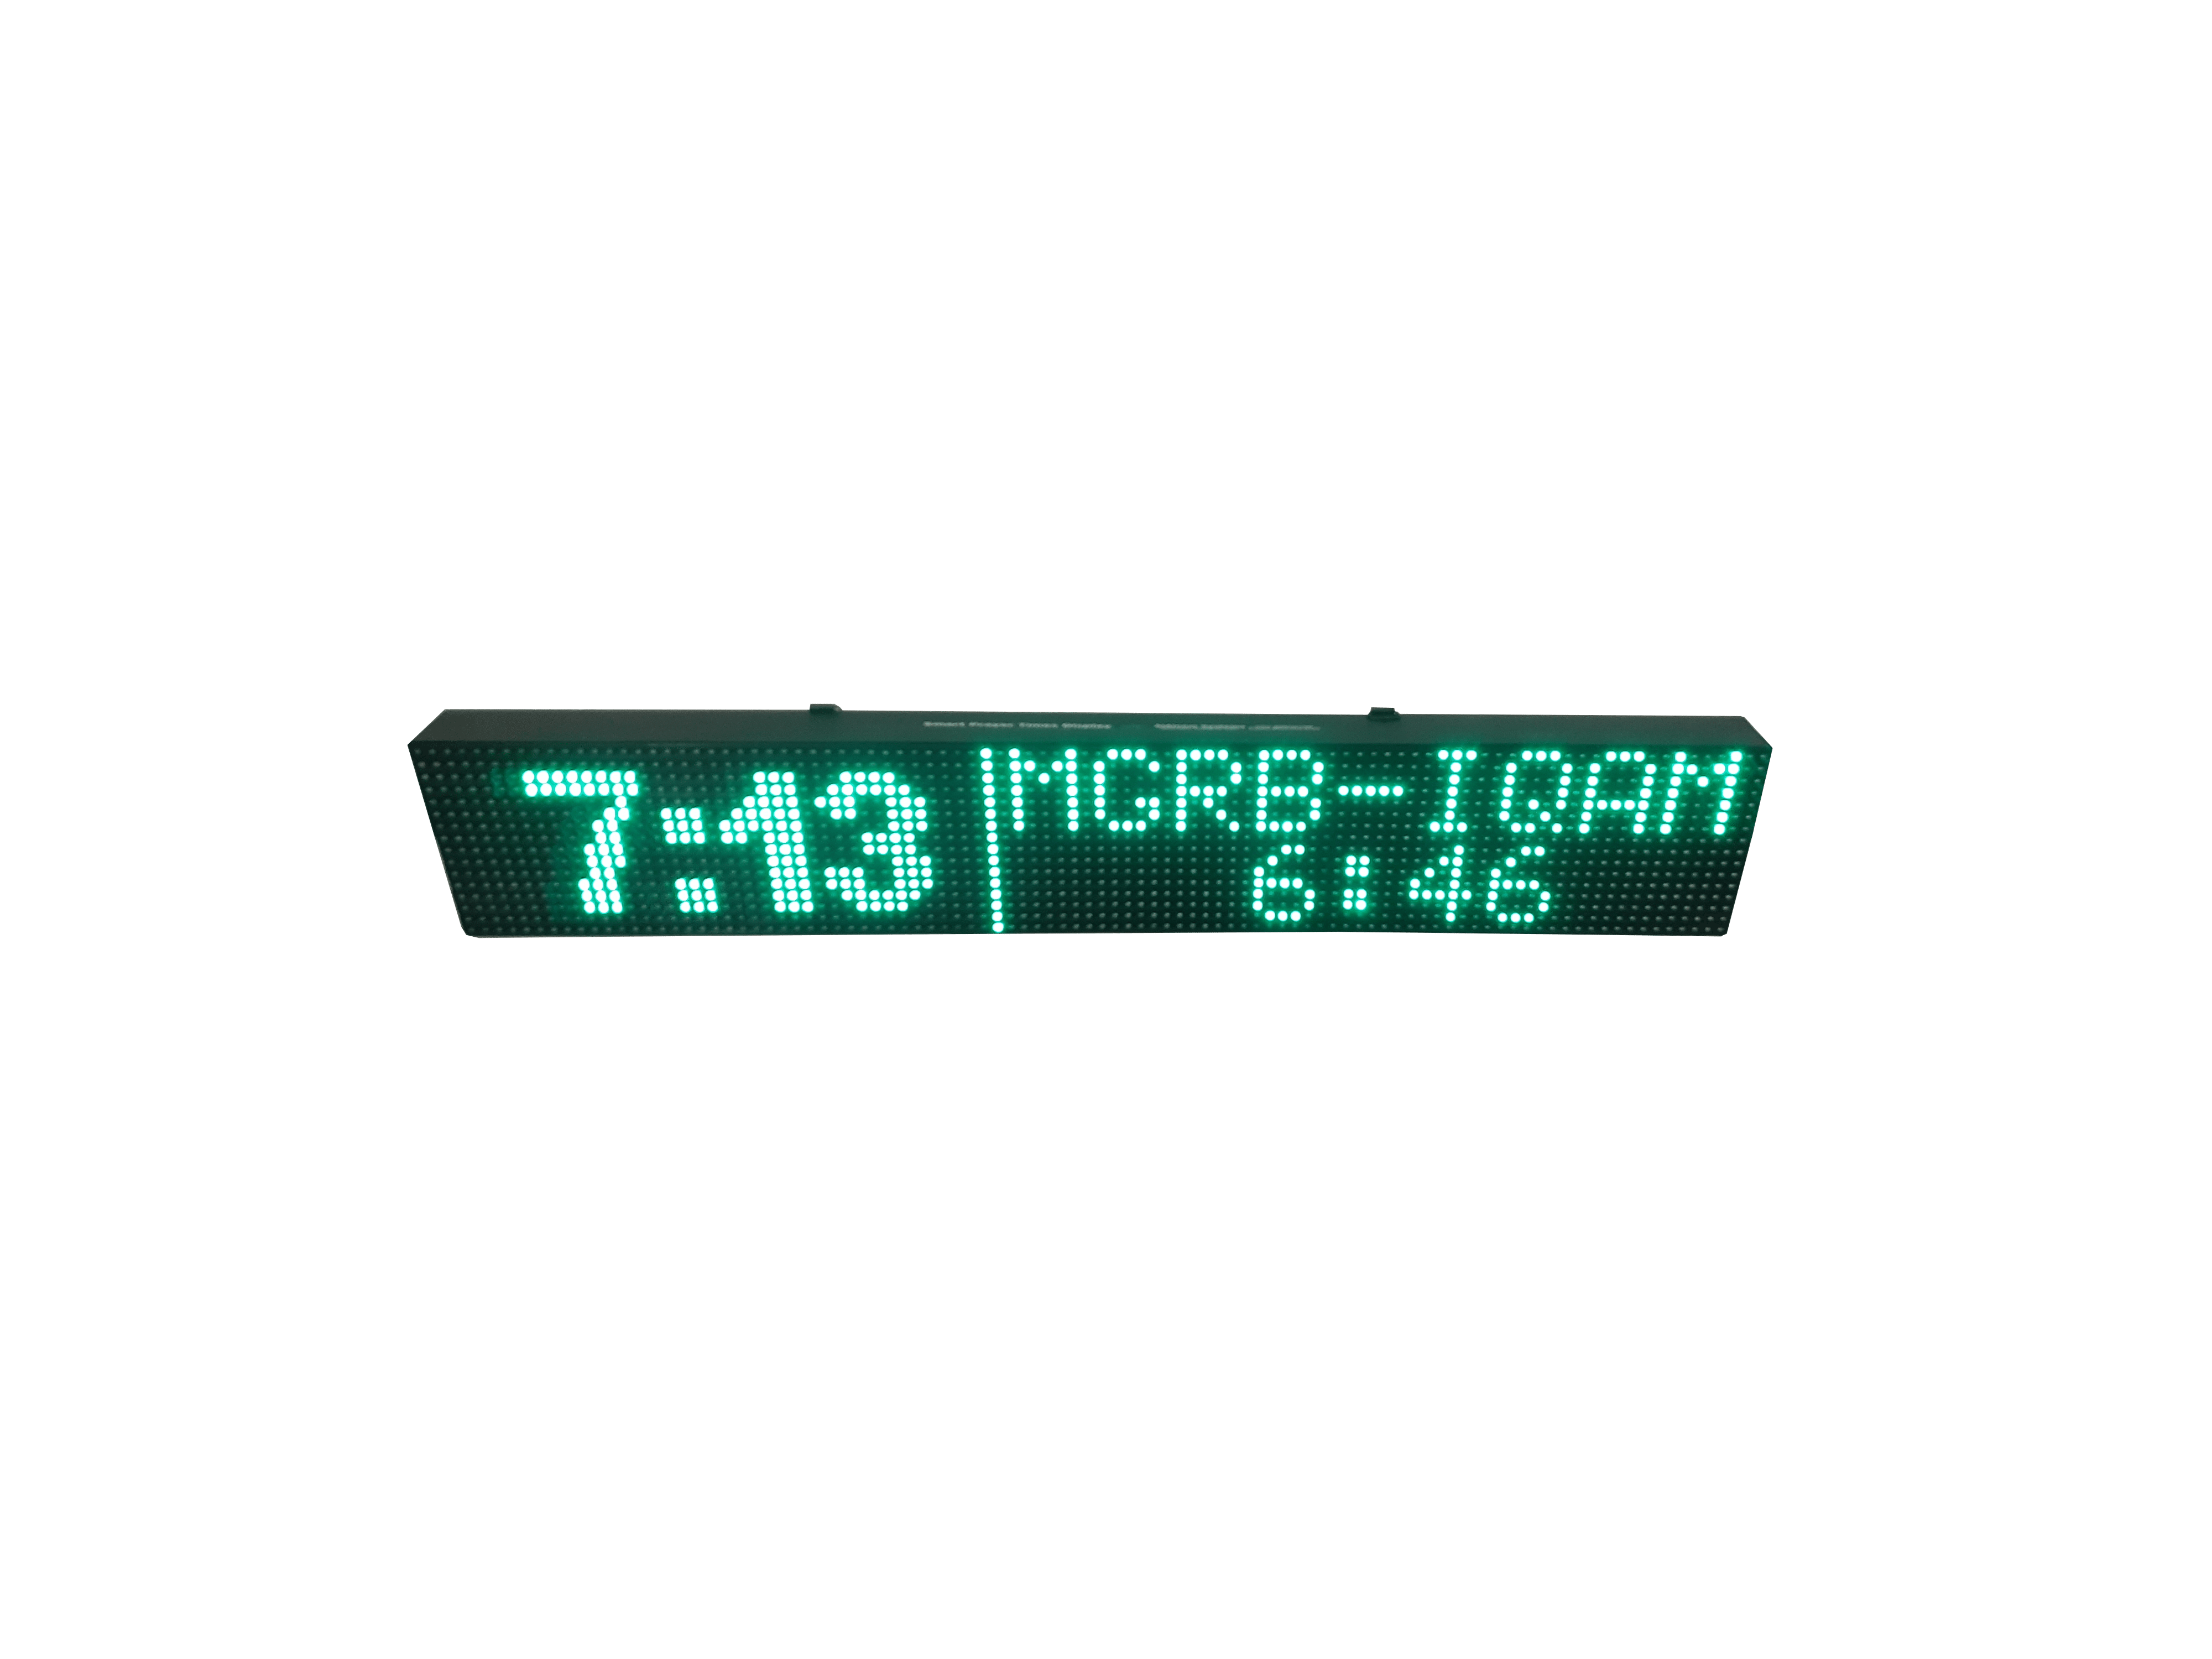 A1 Automatic Azan Wall Clock For Mosque Led Display